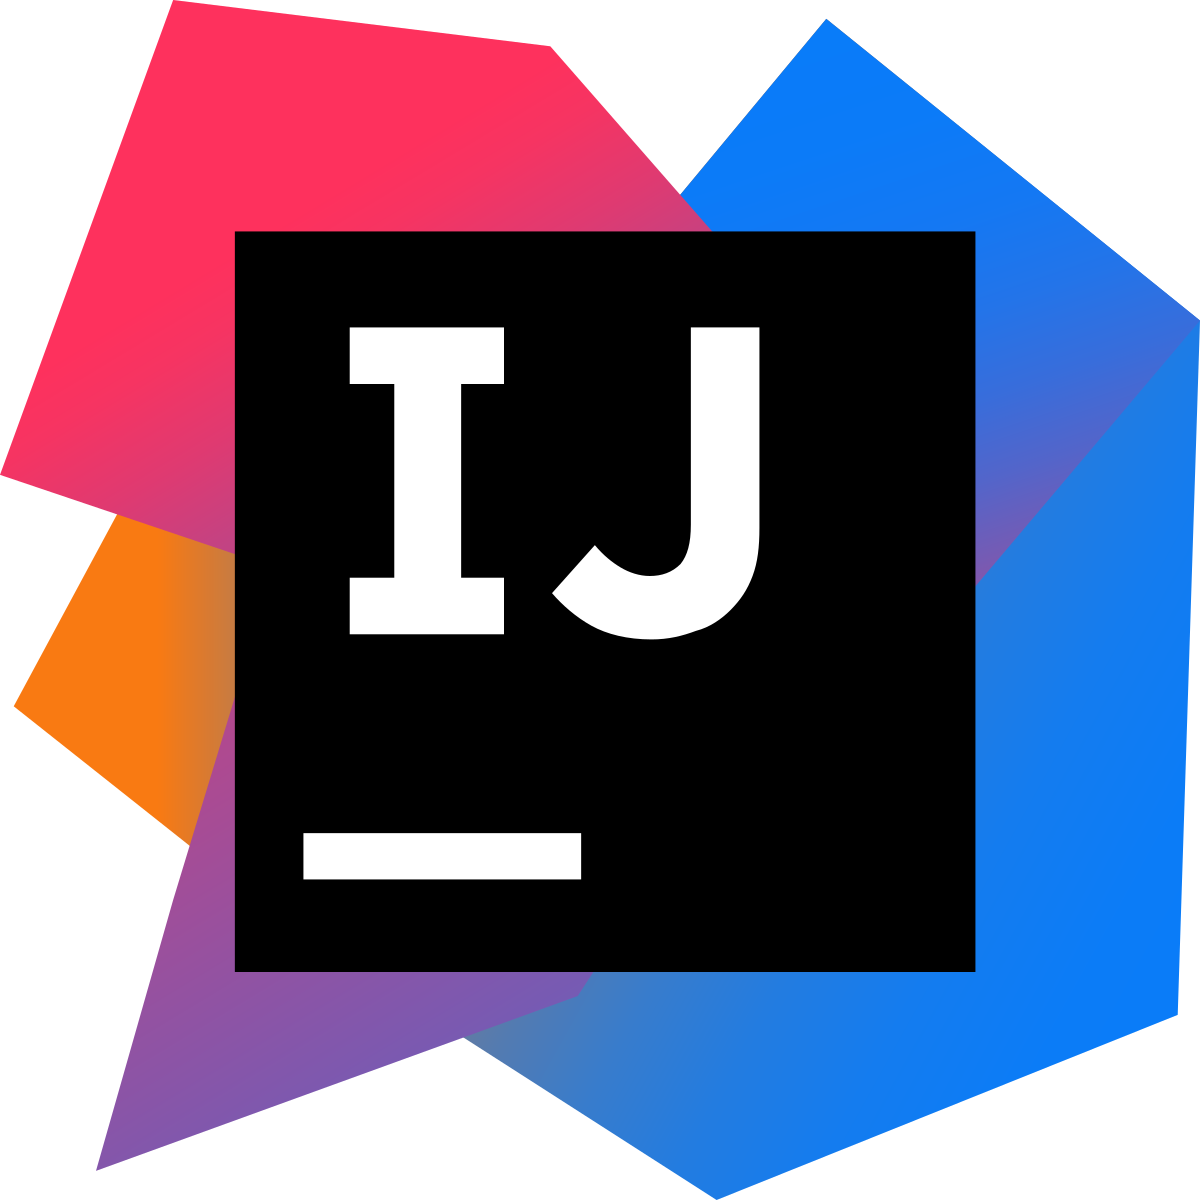 intellij logo.